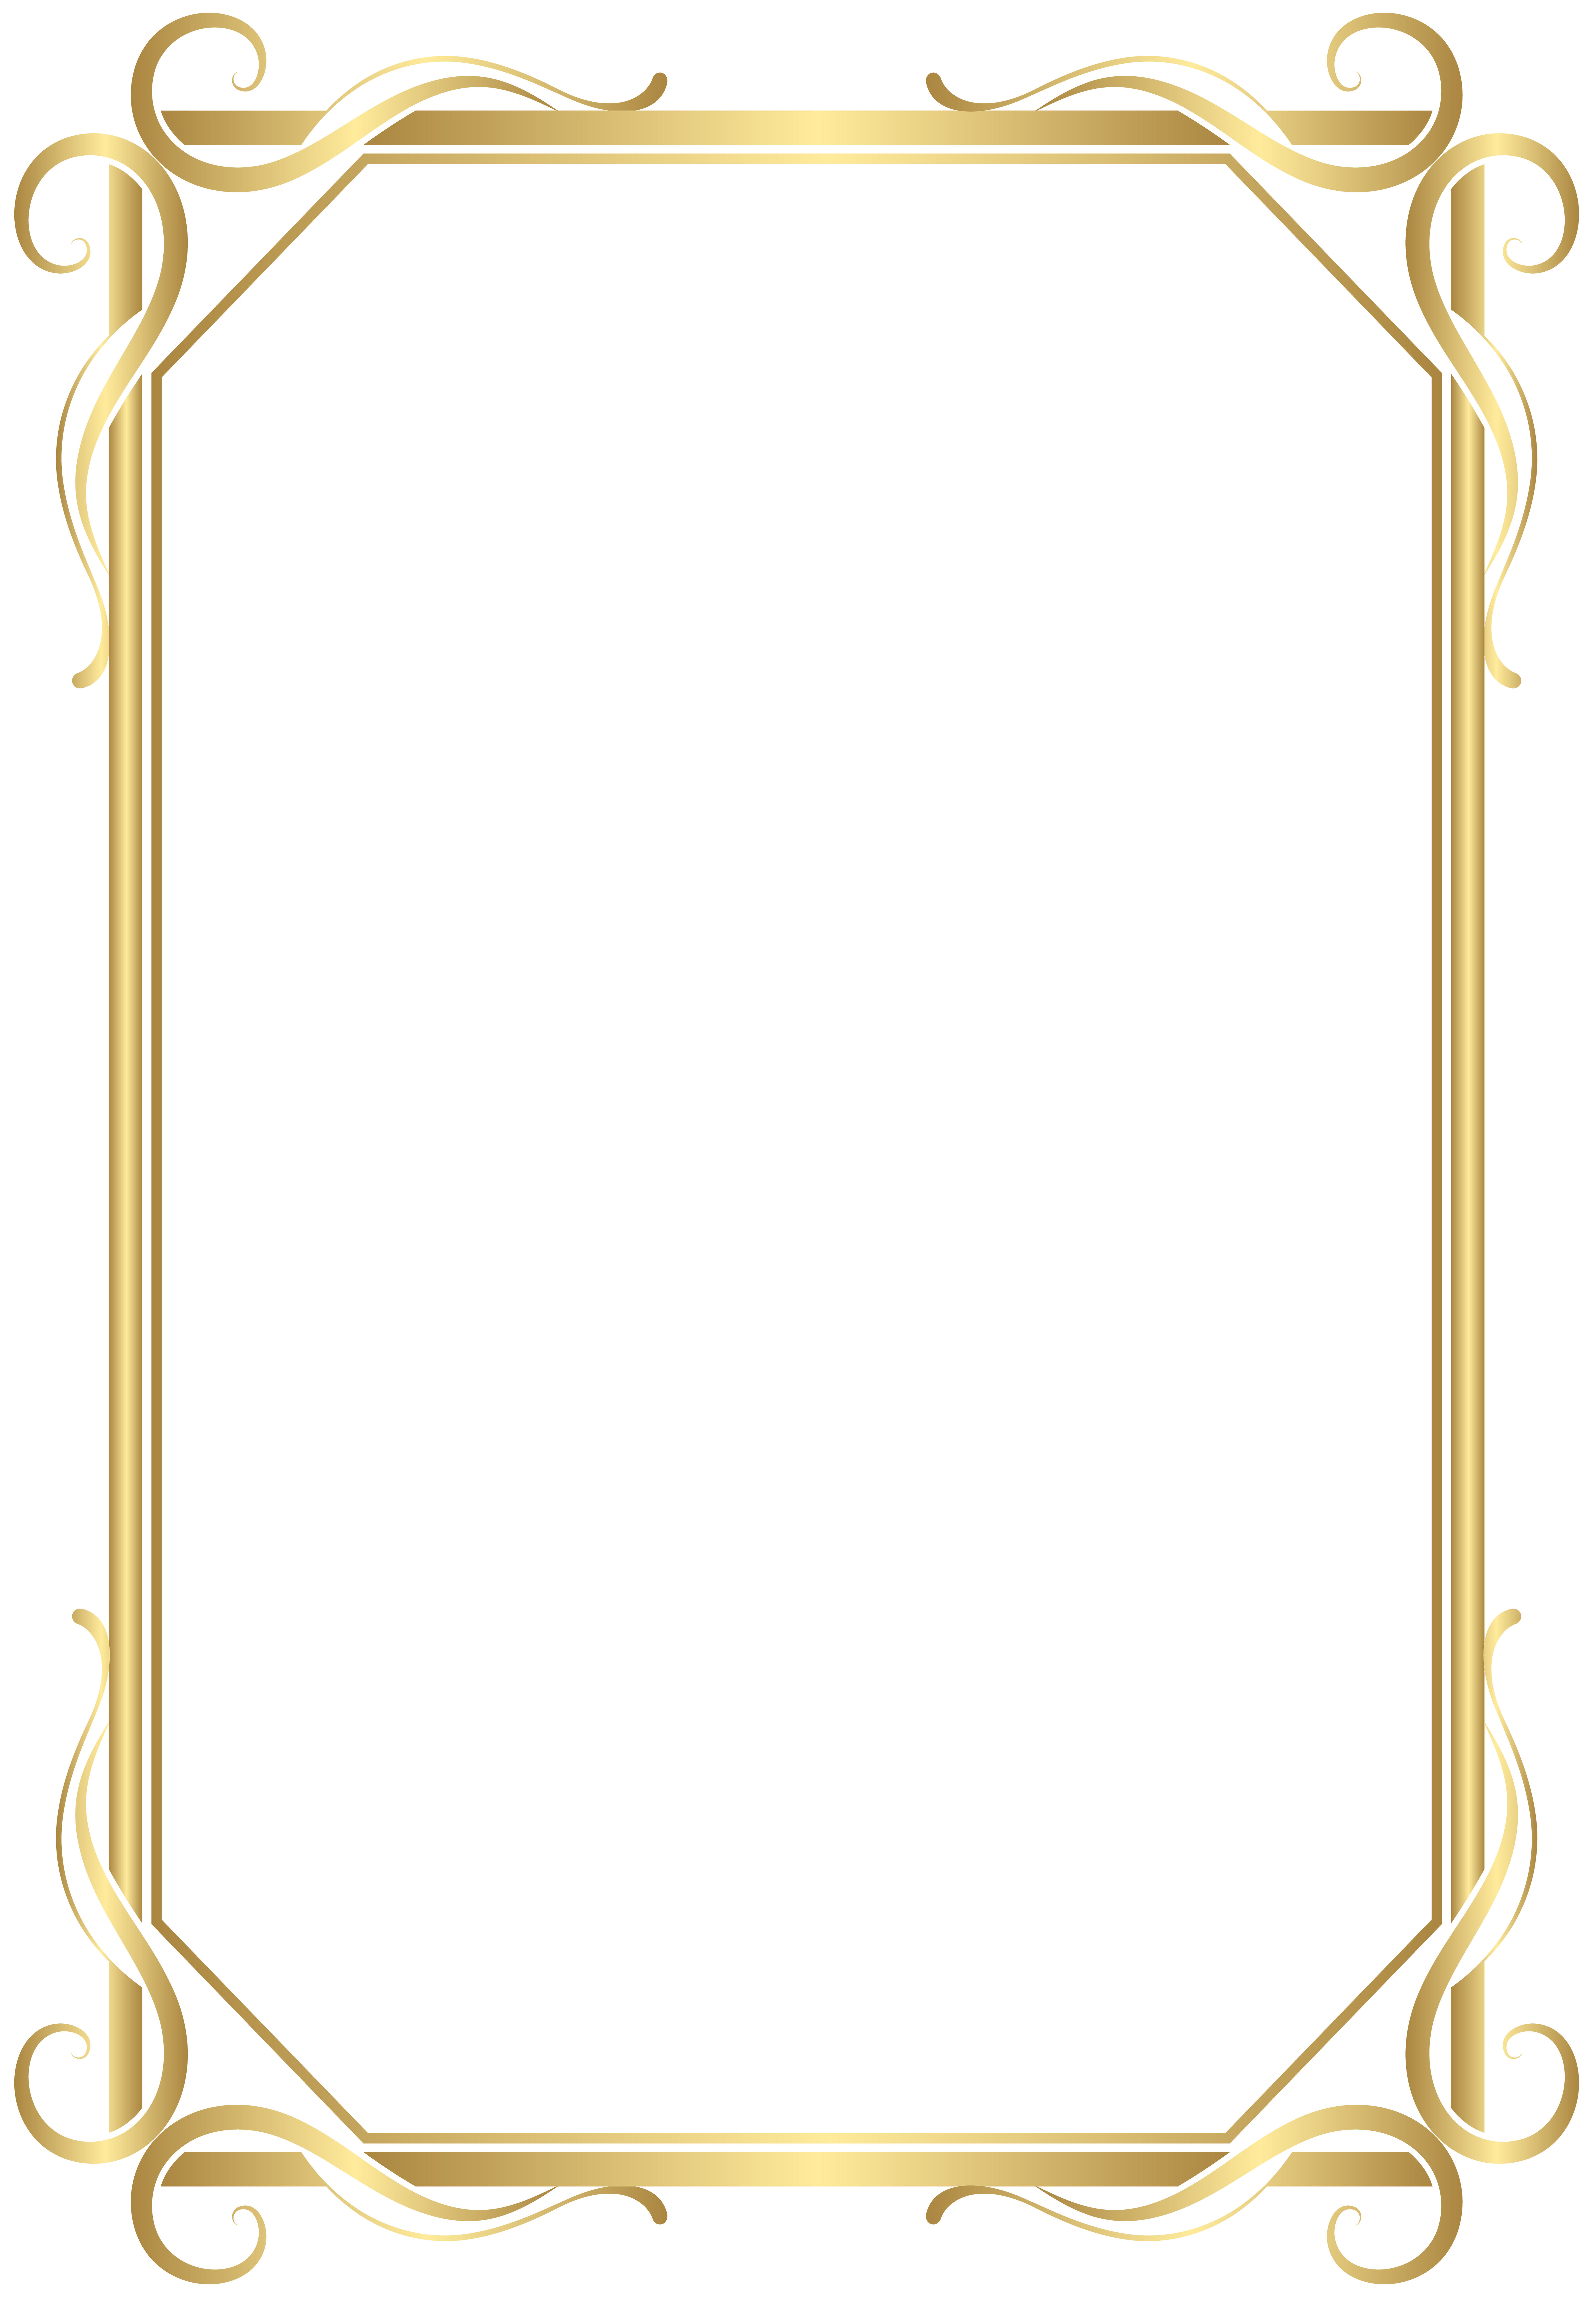 Frame Border Transparent Png Gold Image Gallery Yopriceville High Quality Images And Transparent Clip Art Frames Borders Frame Clipart Frame Border Design